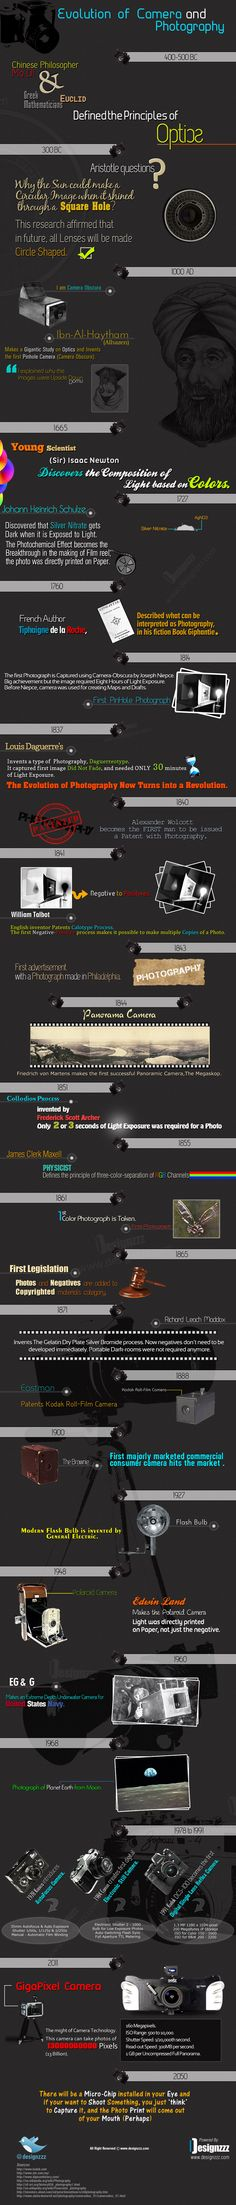 The evolution of photography started in 400 BC and still there are changes going on in this photography industry. To know more about this evolution, check out this infographic.